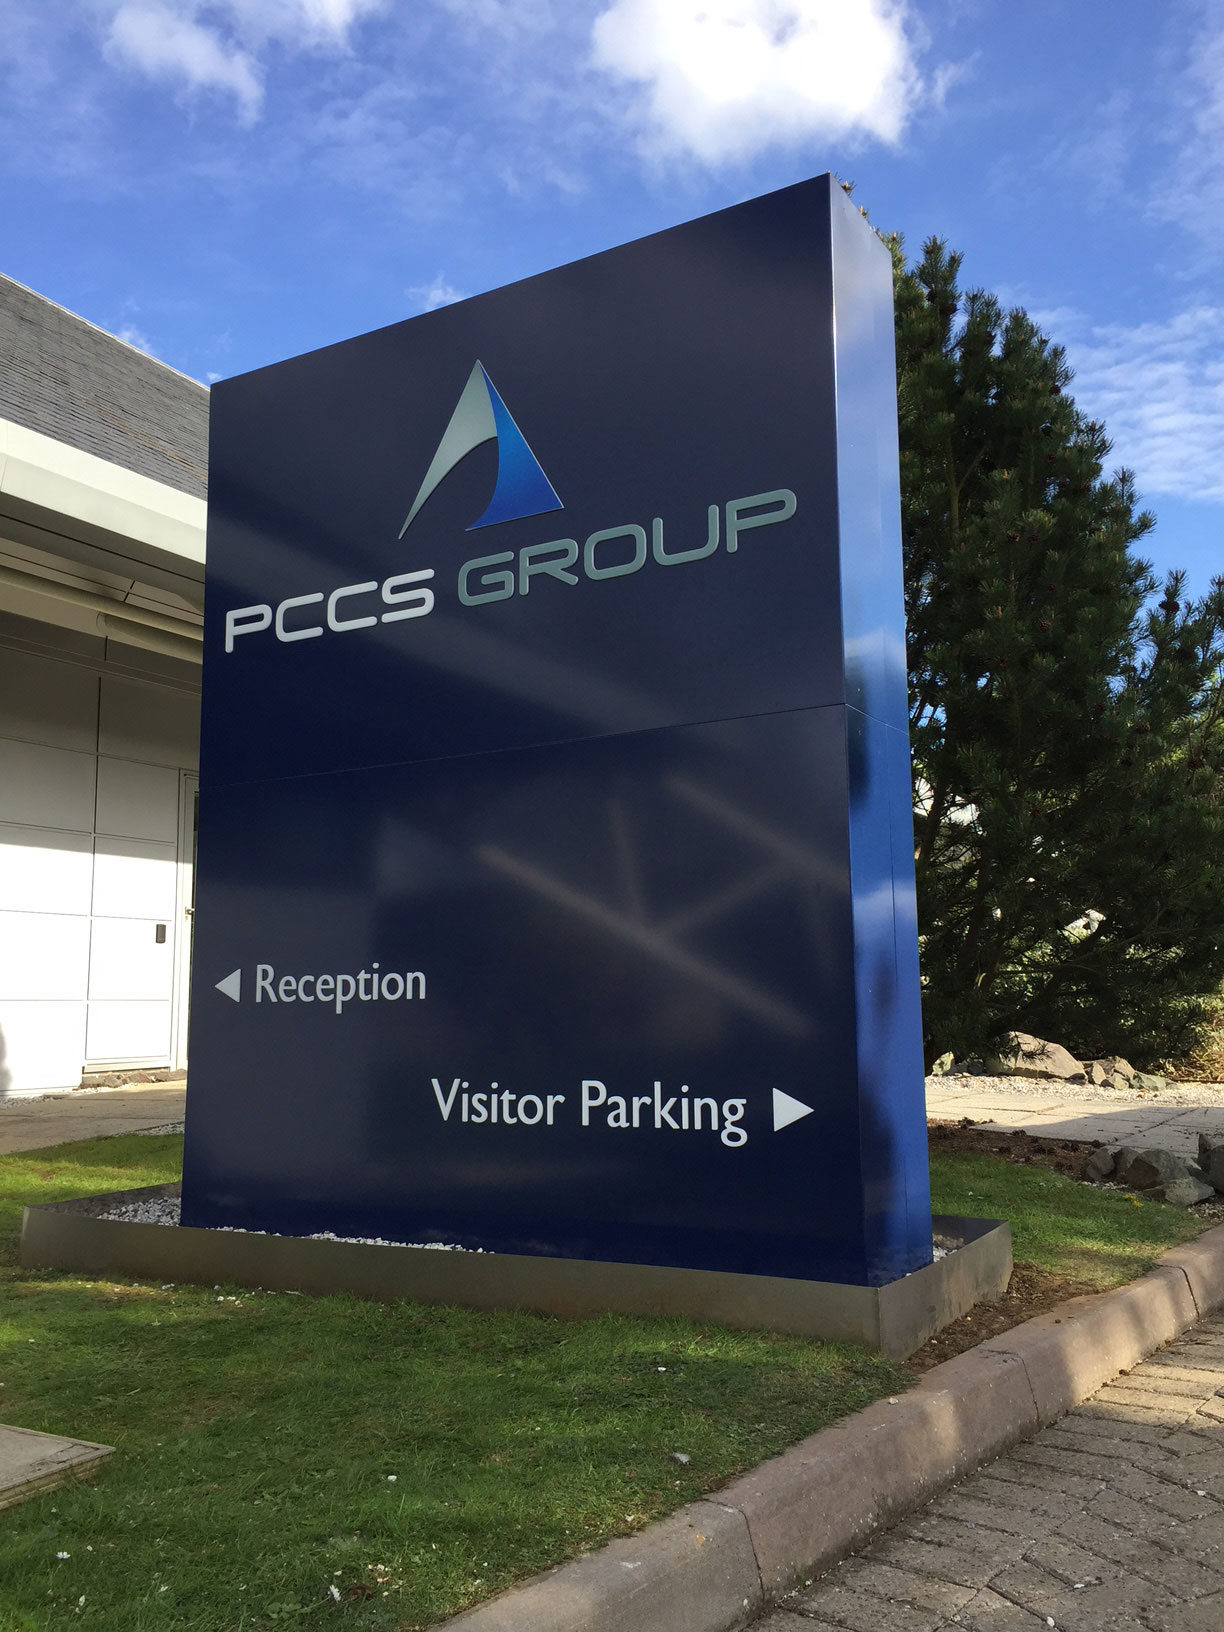 PCCS Group Visitor Parking